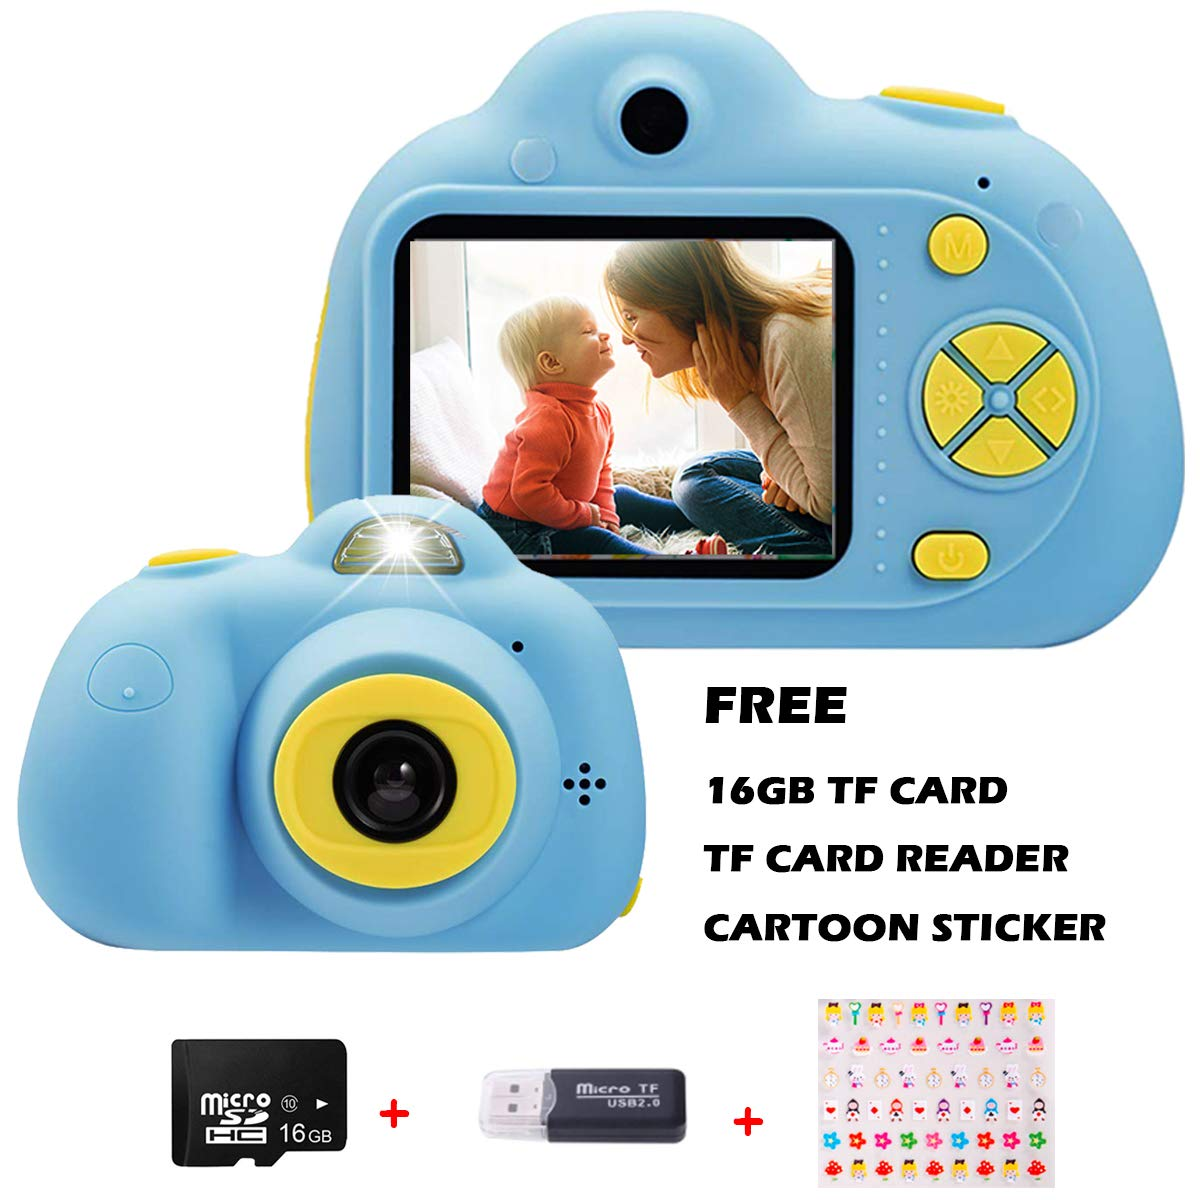 KIDOVE Kids Toys Fun Camera, Waterproof & Shockproof Child Selfie digital game Camcorder, 8MP 1080P dual camera Video Recorder, Creative Birthday Gifts for girls and boys, 16GB TF Card Included (Blue) by KIDOVE (Image #8)